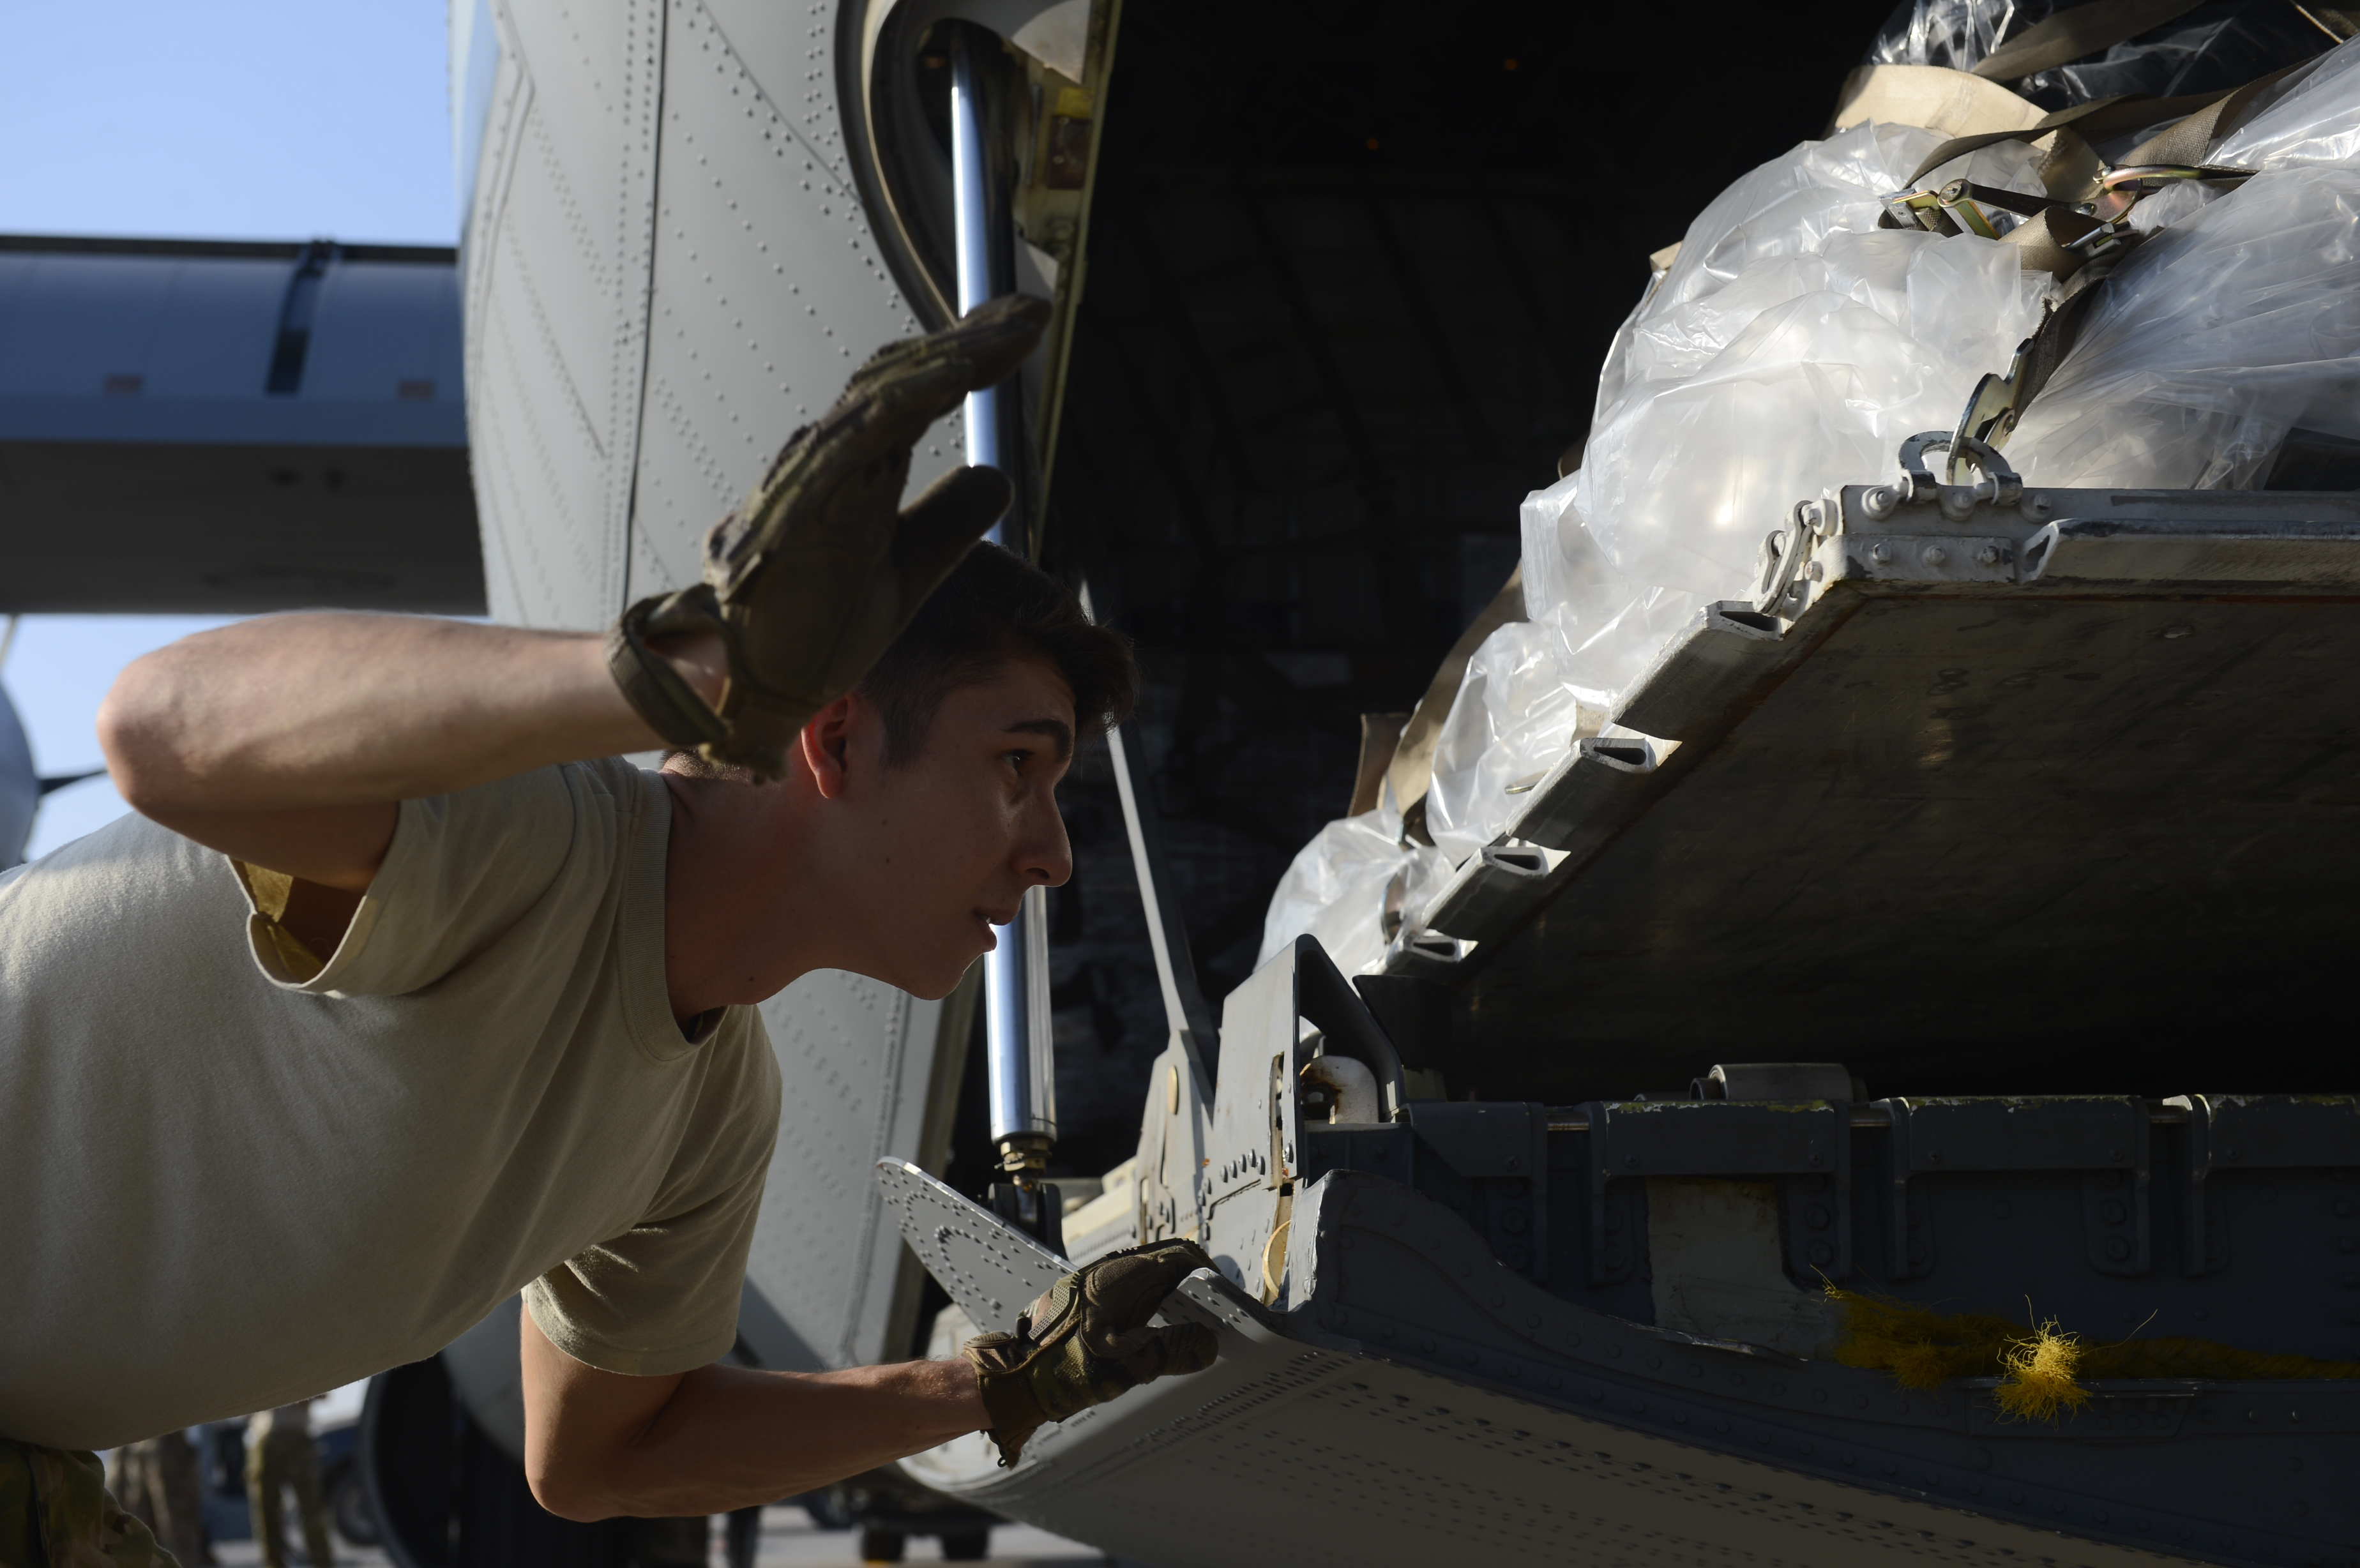 Senior Airman Zachary McGhee, 75th Expeditionary Airlift Squadron loadmaster, instructs a forklift operator to lower cargo onto a C-130J Super Hercules Nov. 24, 2015, at Camp Lemonnier, Djibouti. The 75th EAS' C-130J aircrews fly a wide range of missions, including the timely movement of the East Africa Response Force in support of Combined Joint Task Force-Horn of Africa. (U.S. Air Force photo by Senior Airman Peter Thompson)